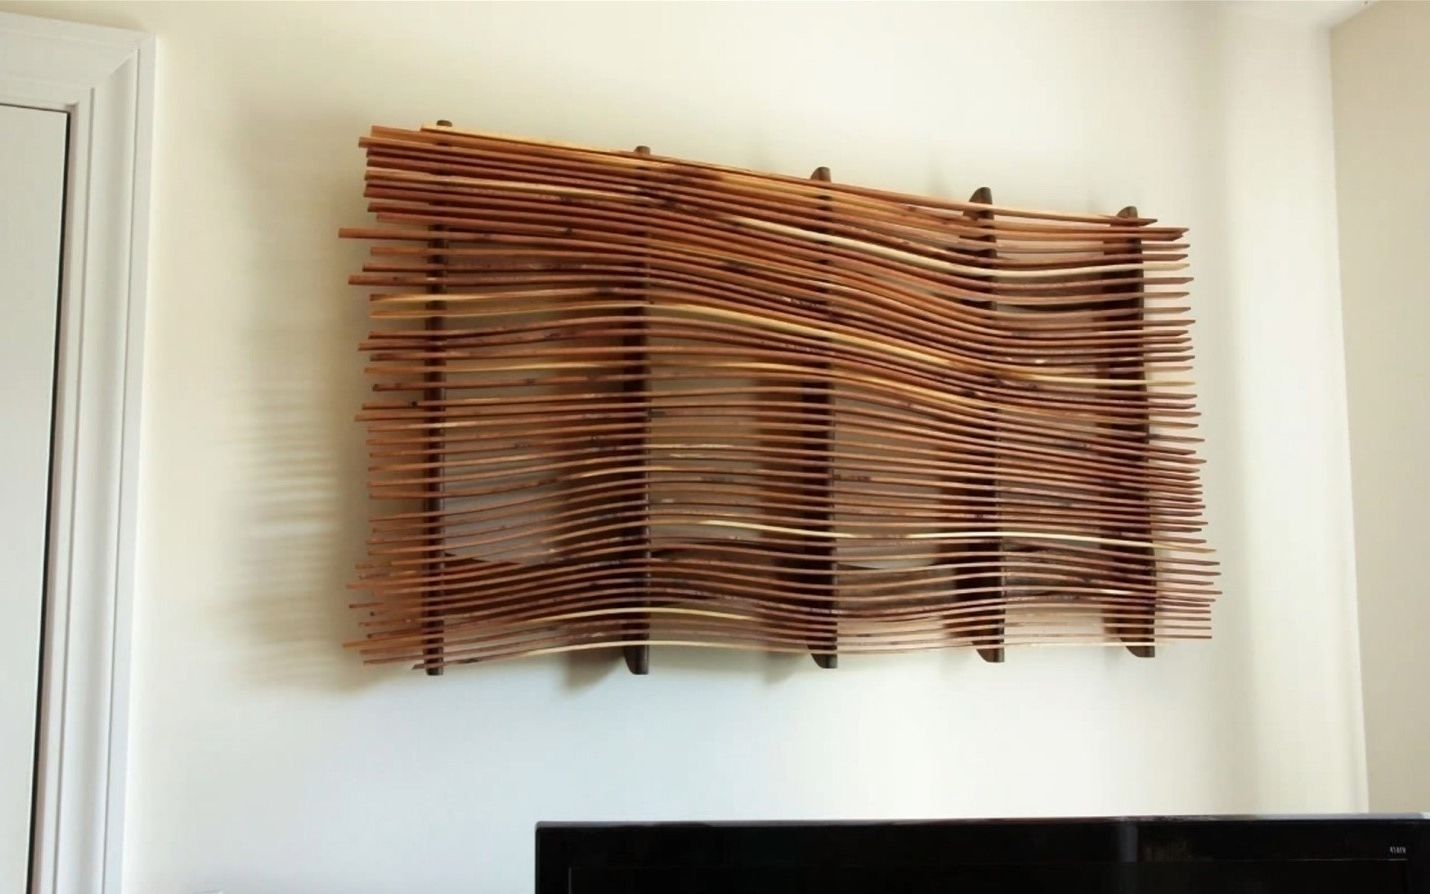 How To Make Wall Art From Scrap Wood